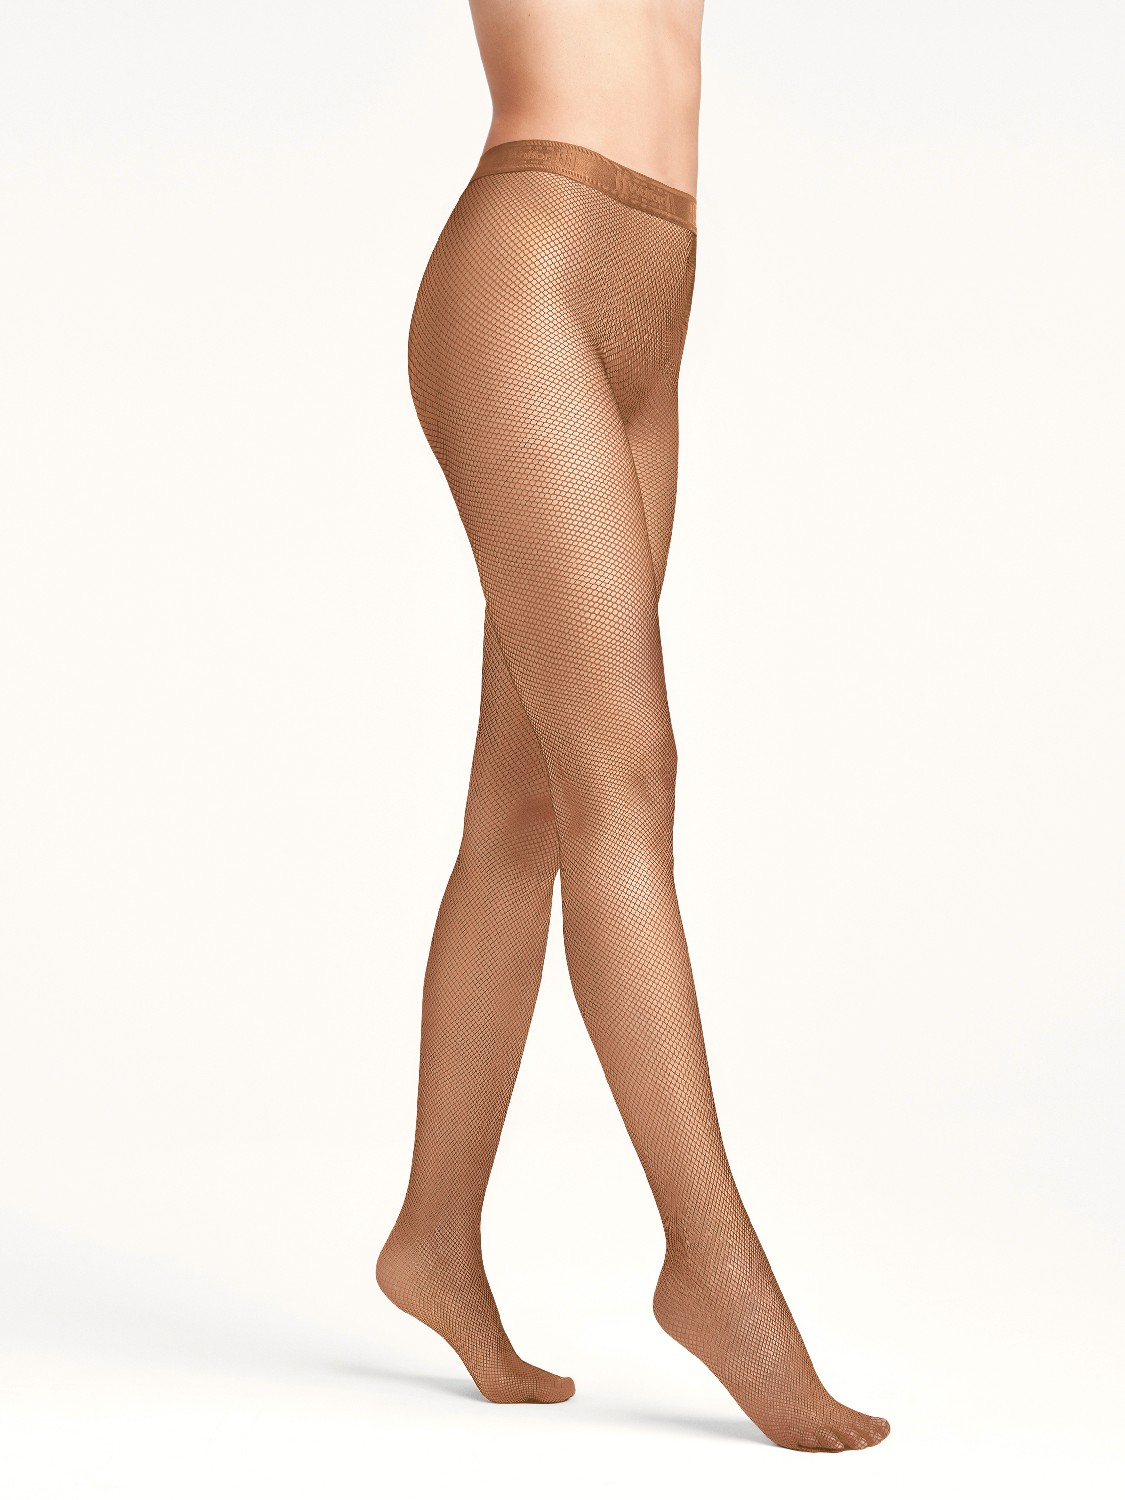 Колготы twenties comfort tights фото